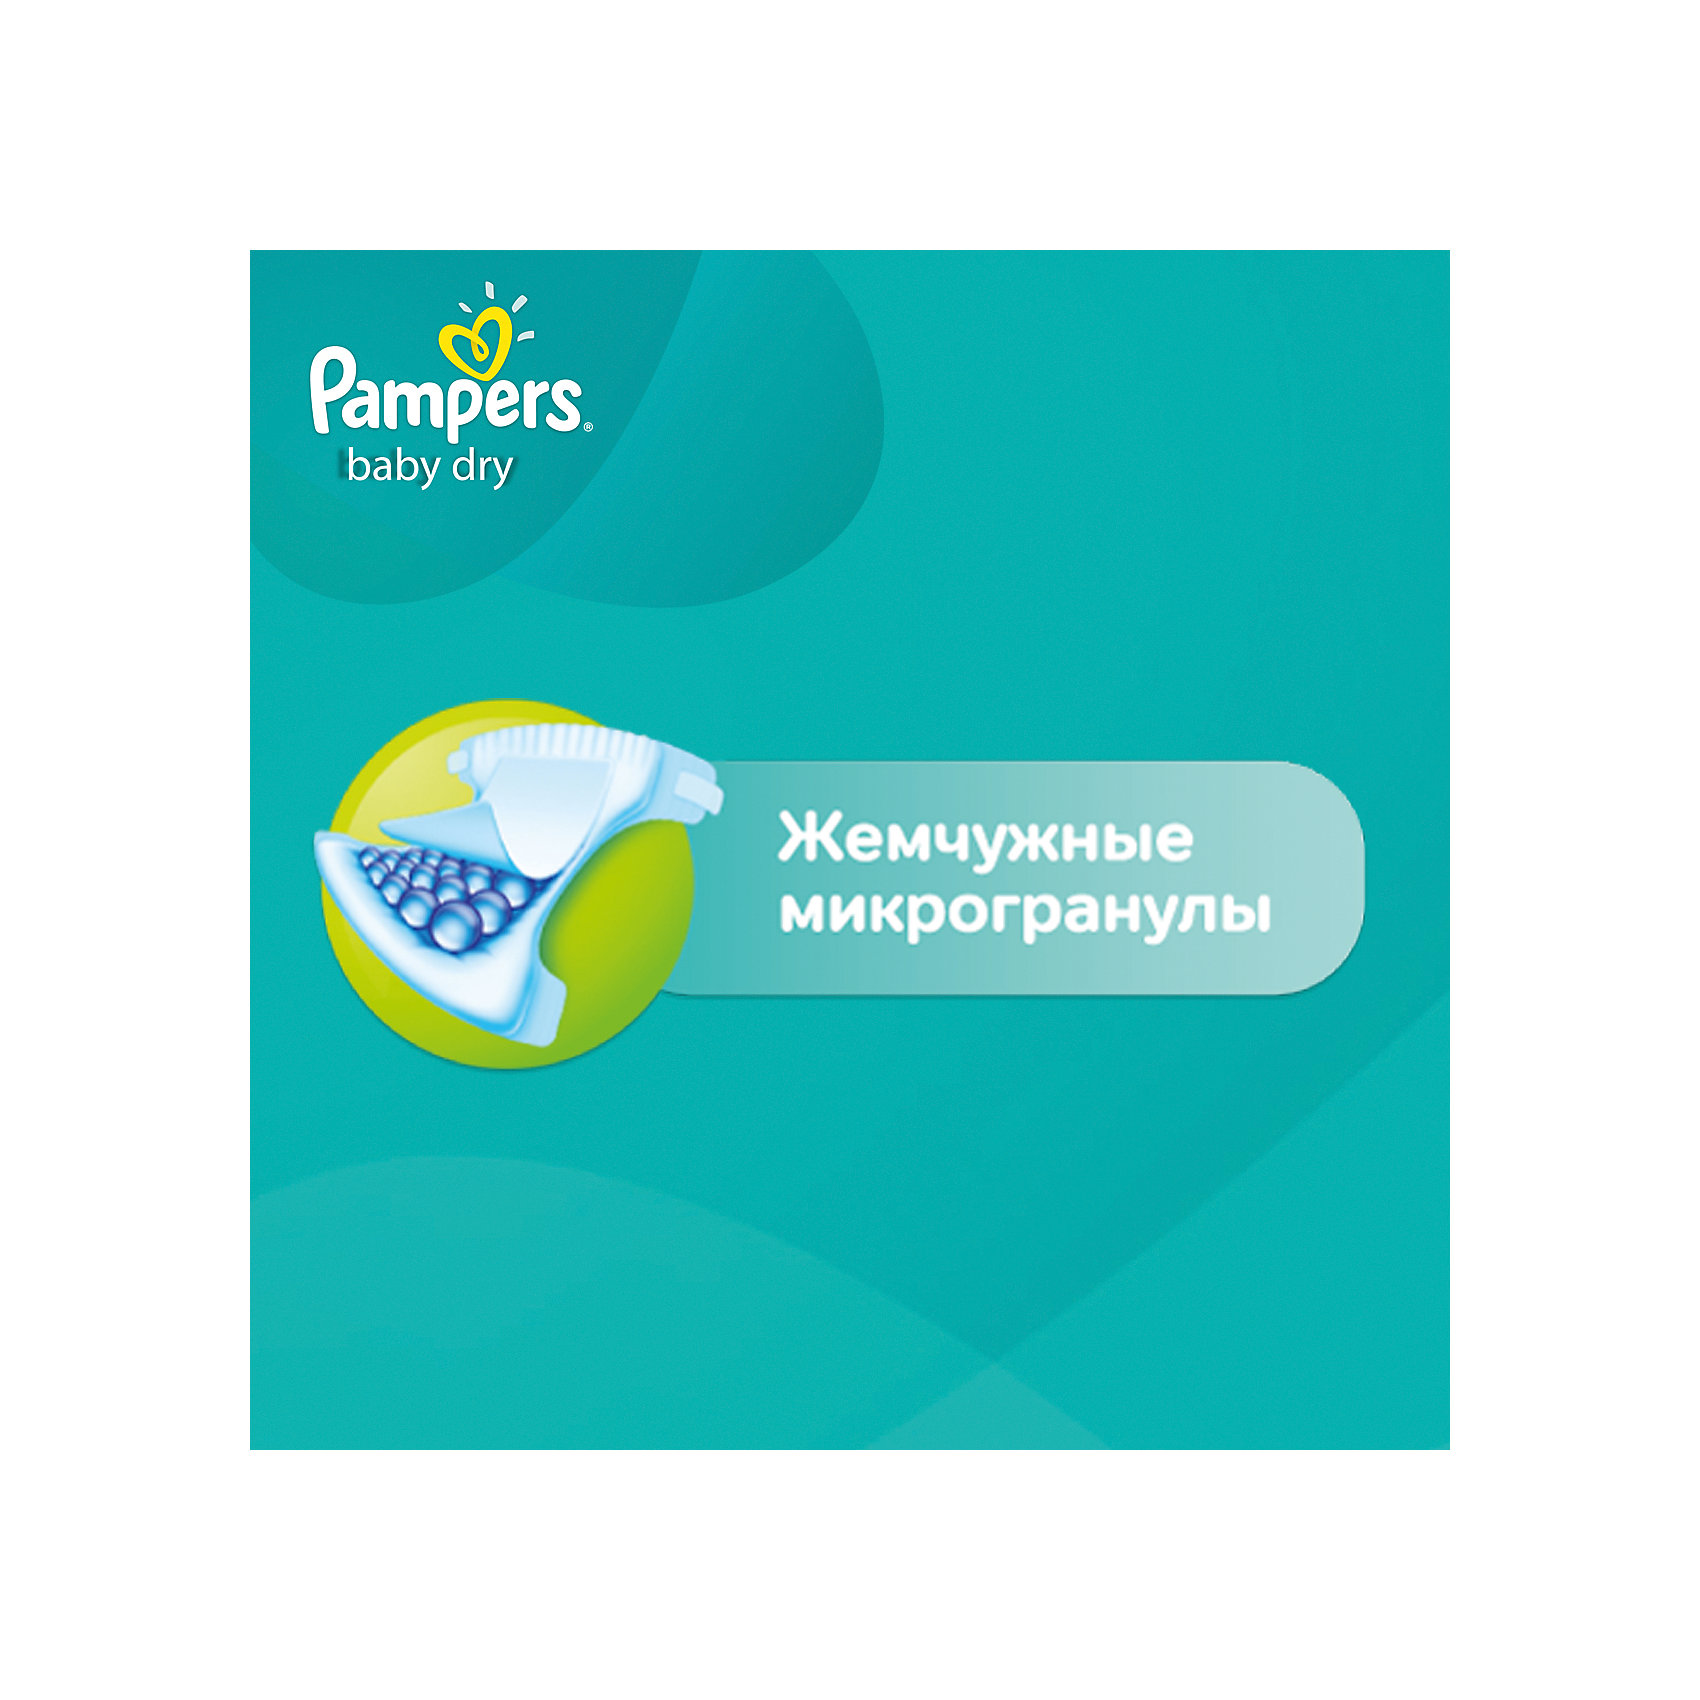 Подгузники Pampers Active Baby-Dry, 11-18 кг, 5 размер, 87 шт., Pampers